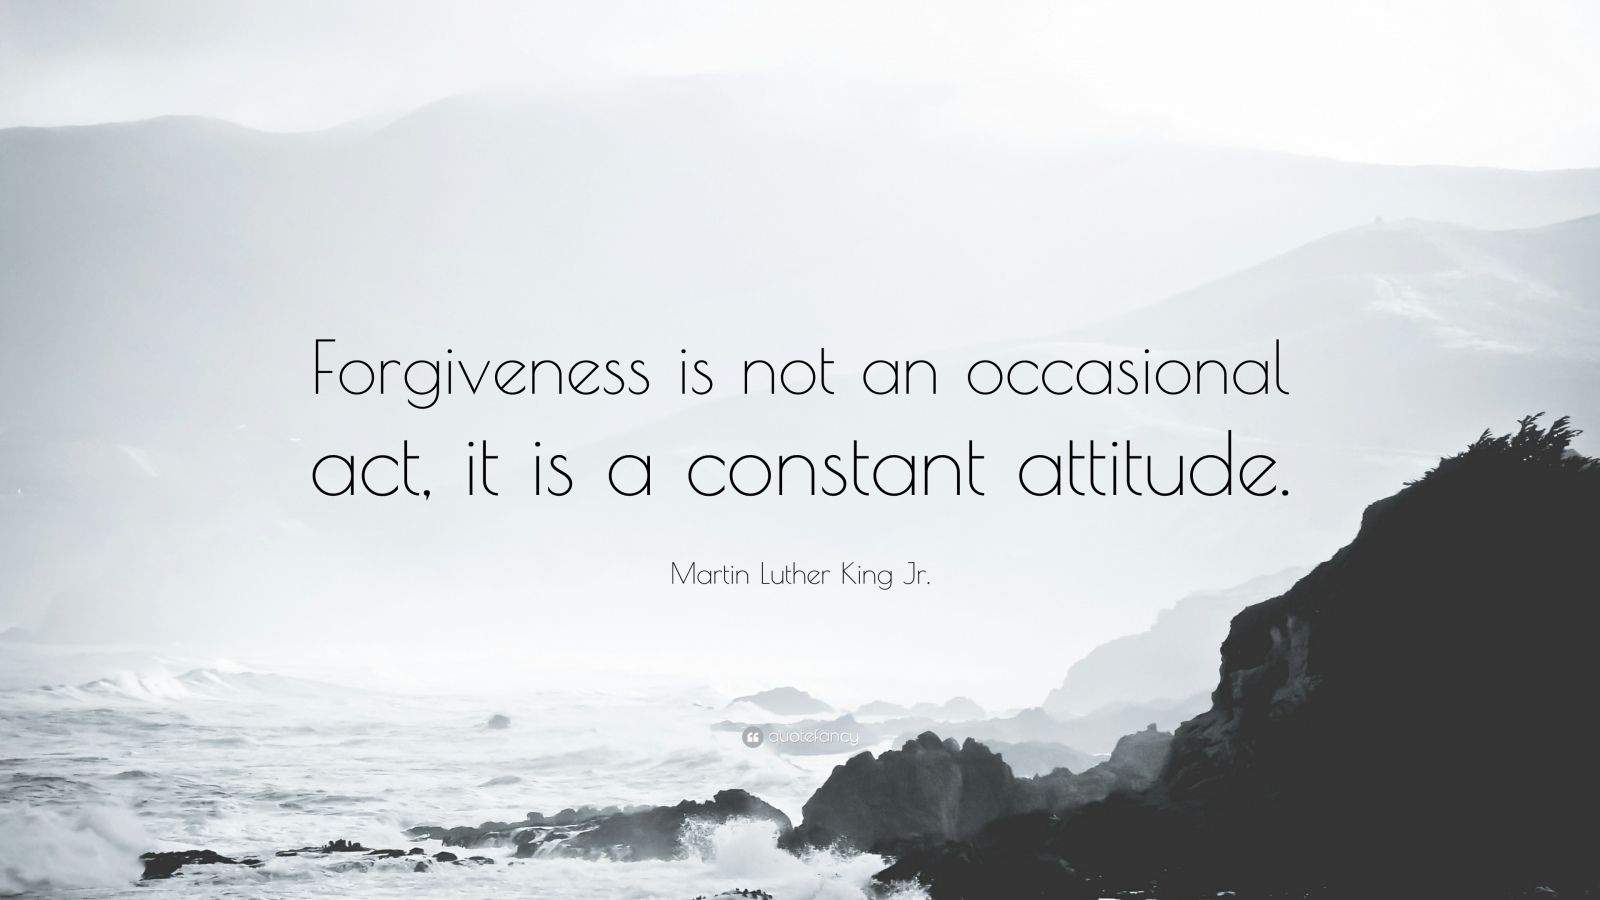 """Martin Luther King Jr. Quote: """"Forgiveness is not an occasional act, it is a constant attitude."""""""